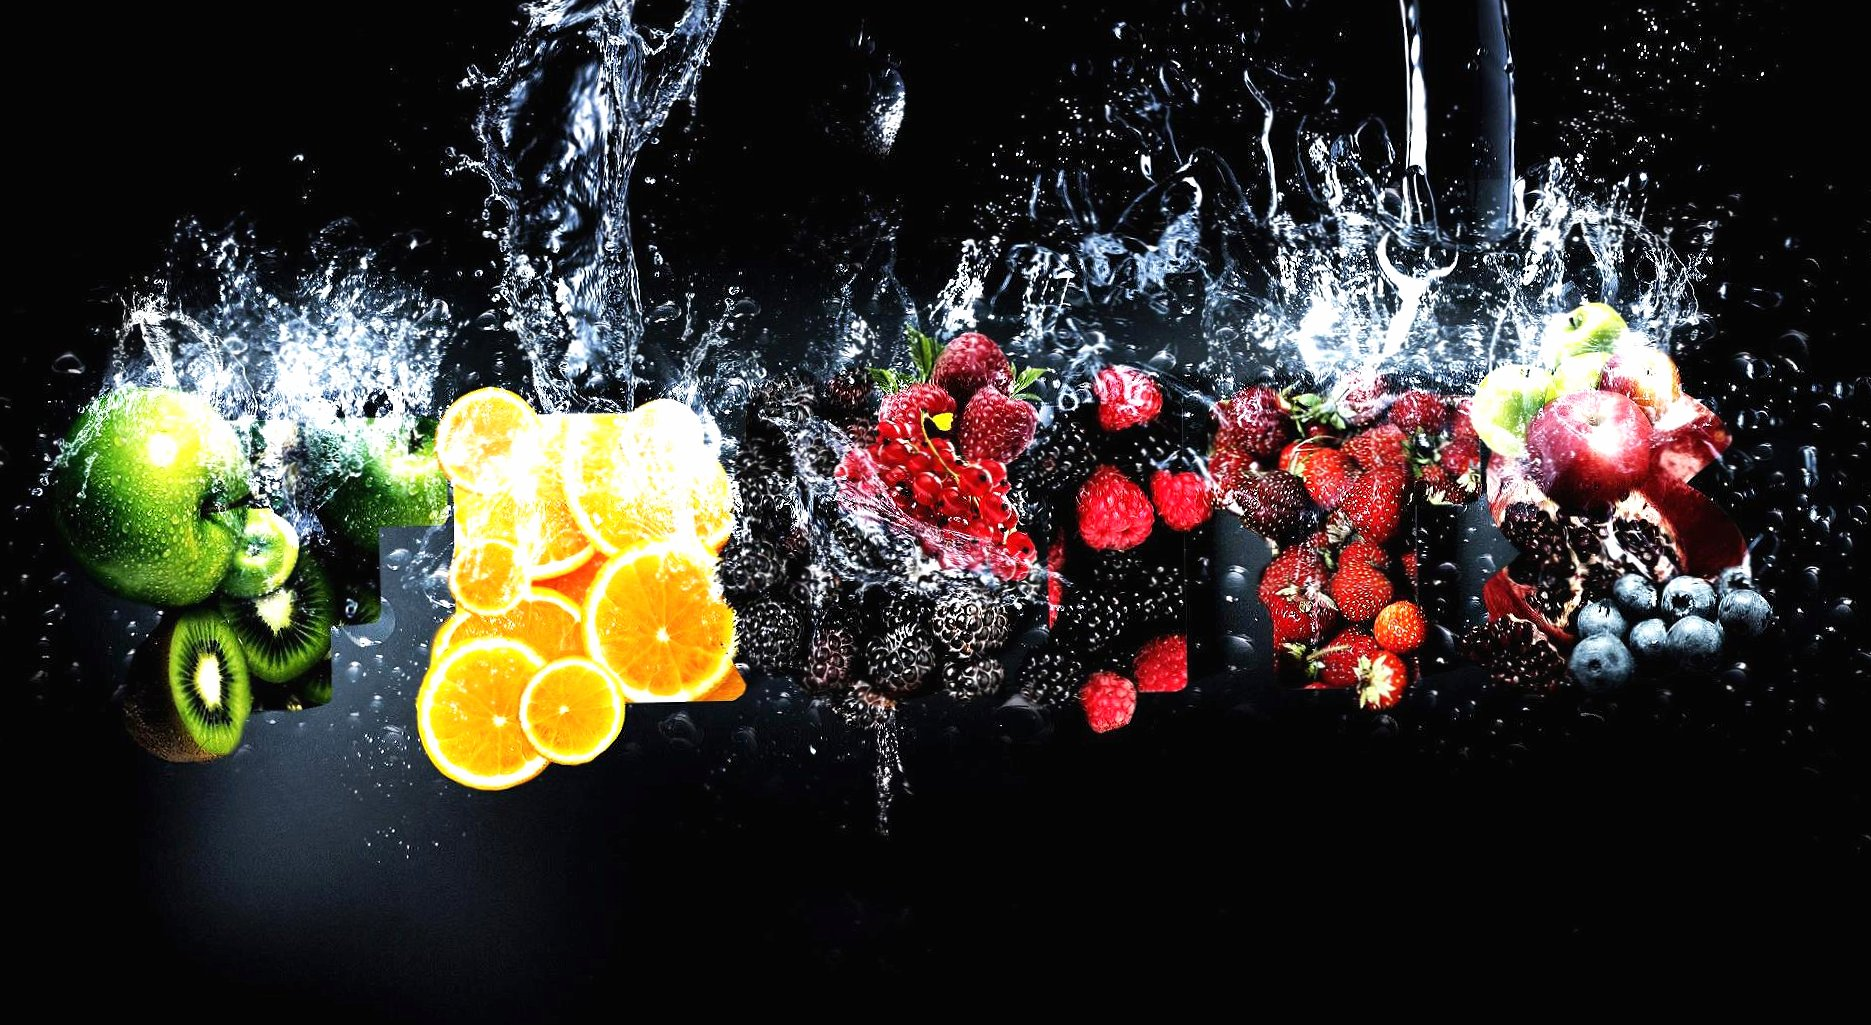 Water and fruits wallpapers HD quality